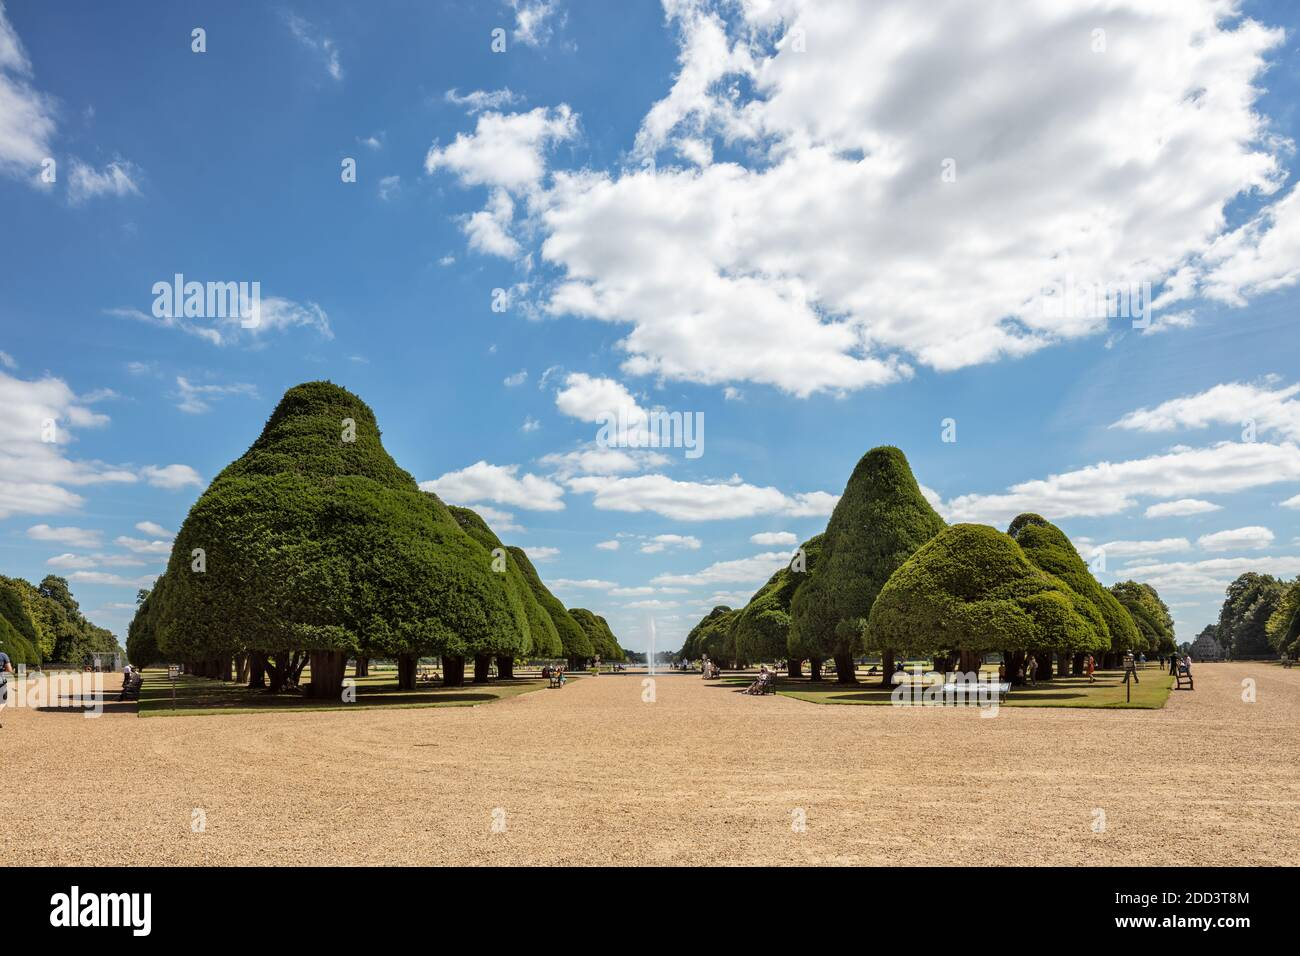 The Great Fountain Garden at Hampton Court Palace in London, UK Stock Photo